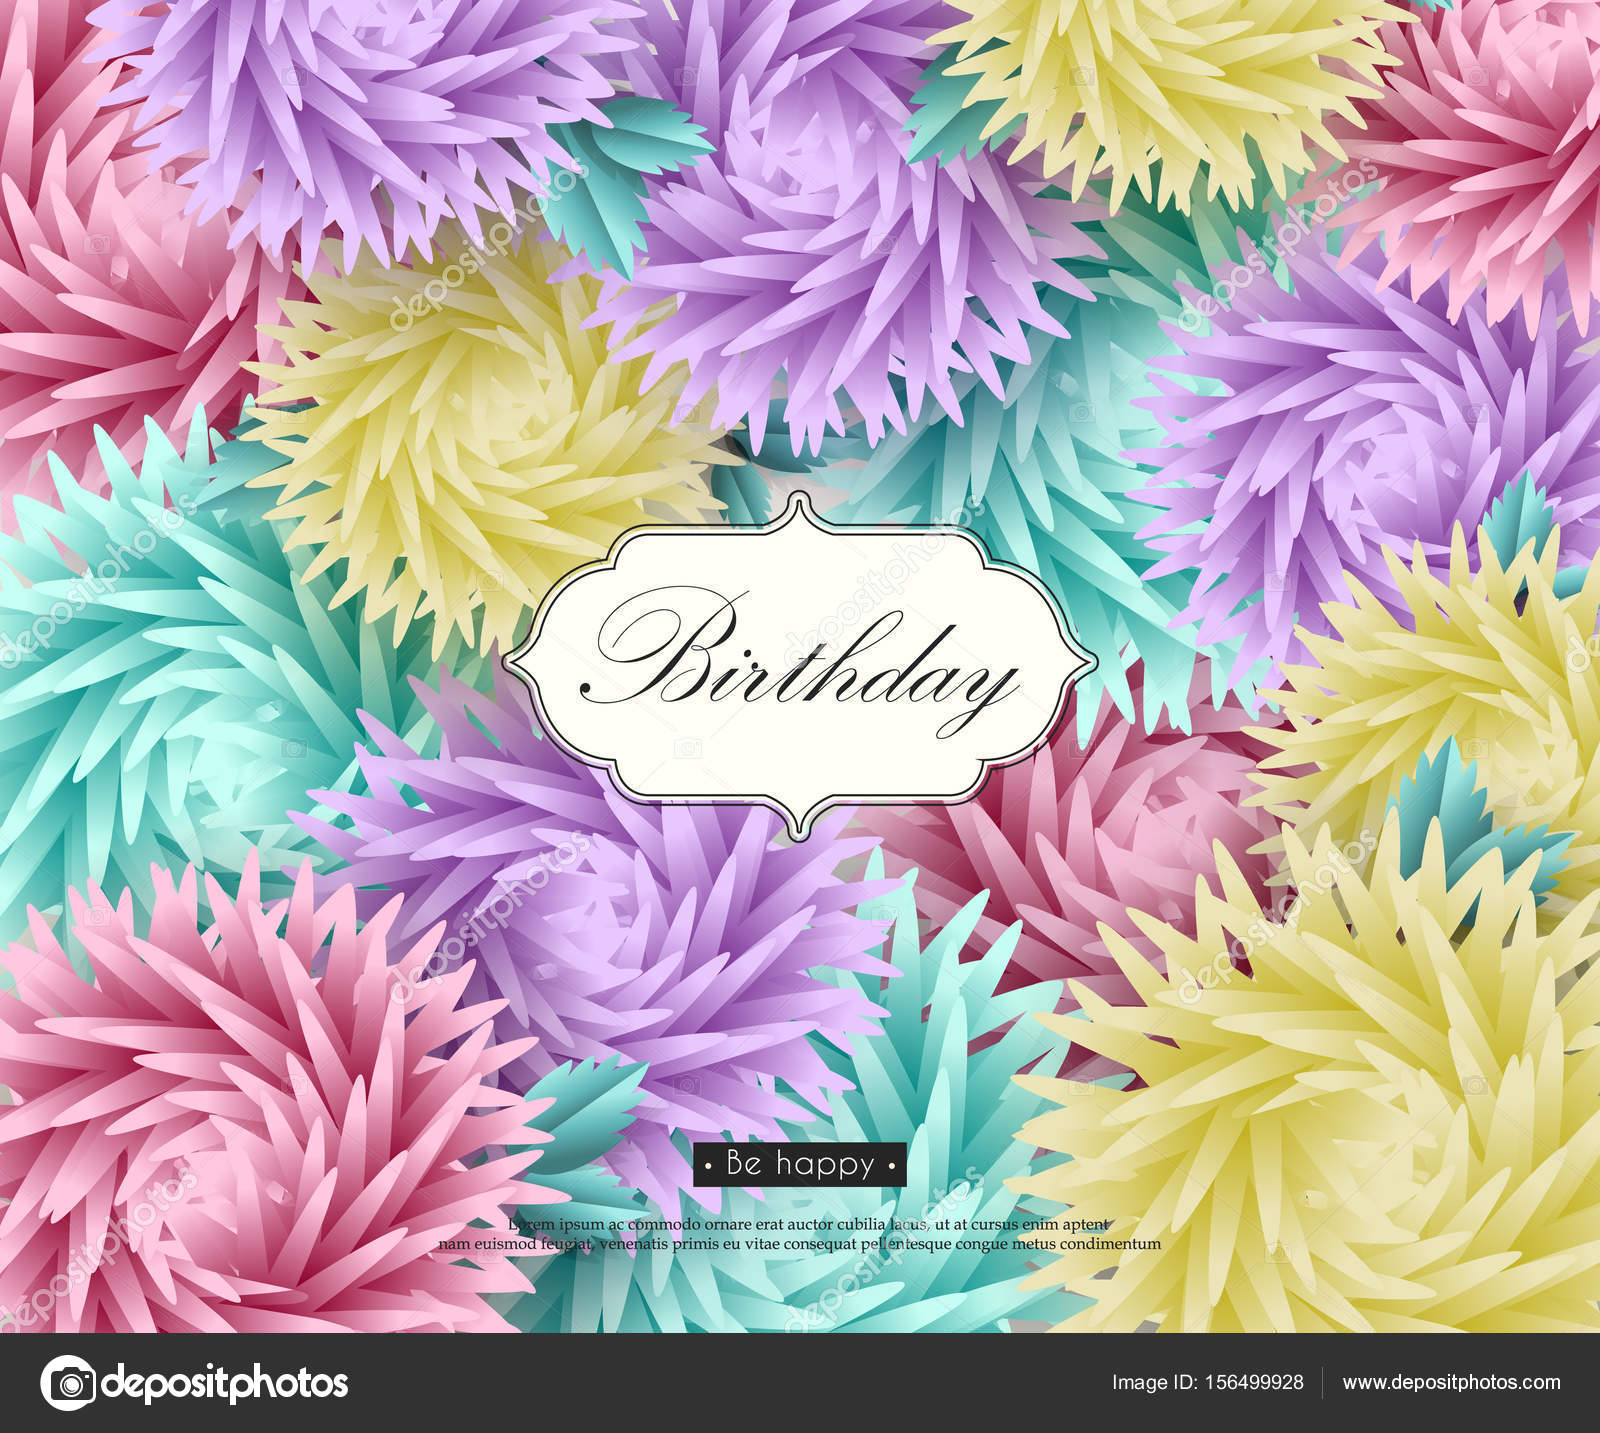 3d flower paper art stock vector smska 156499928 background with 3d flowers and text paper art templates for greeting cards placards banners flyers vector illustration vector by smska mightylinksfo